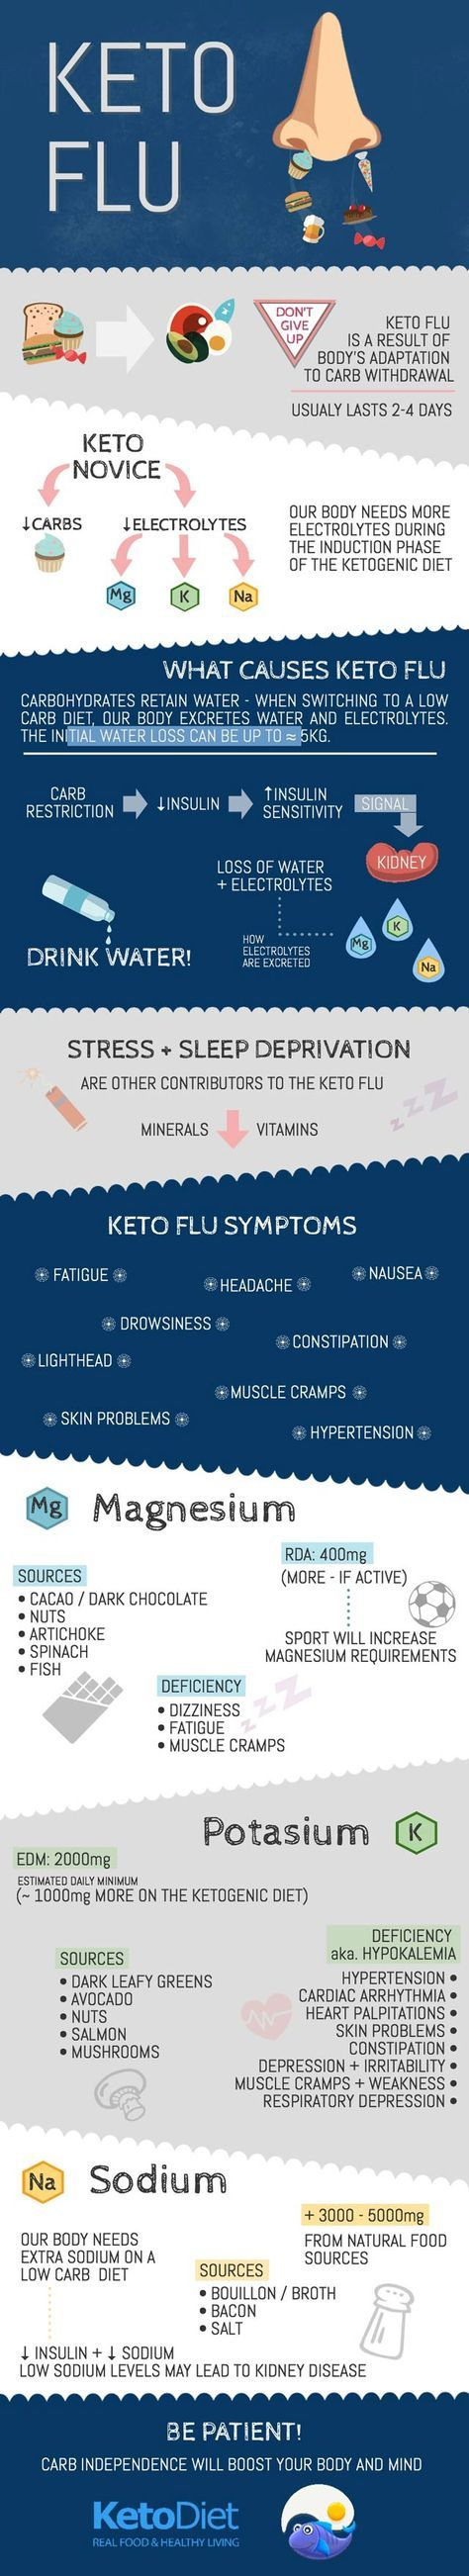 """""""Keto flu"""" is very common state during induction phase of Ketosis. This state is also followed by dizziness, nausea, diarrhea, or muscle cramps."""